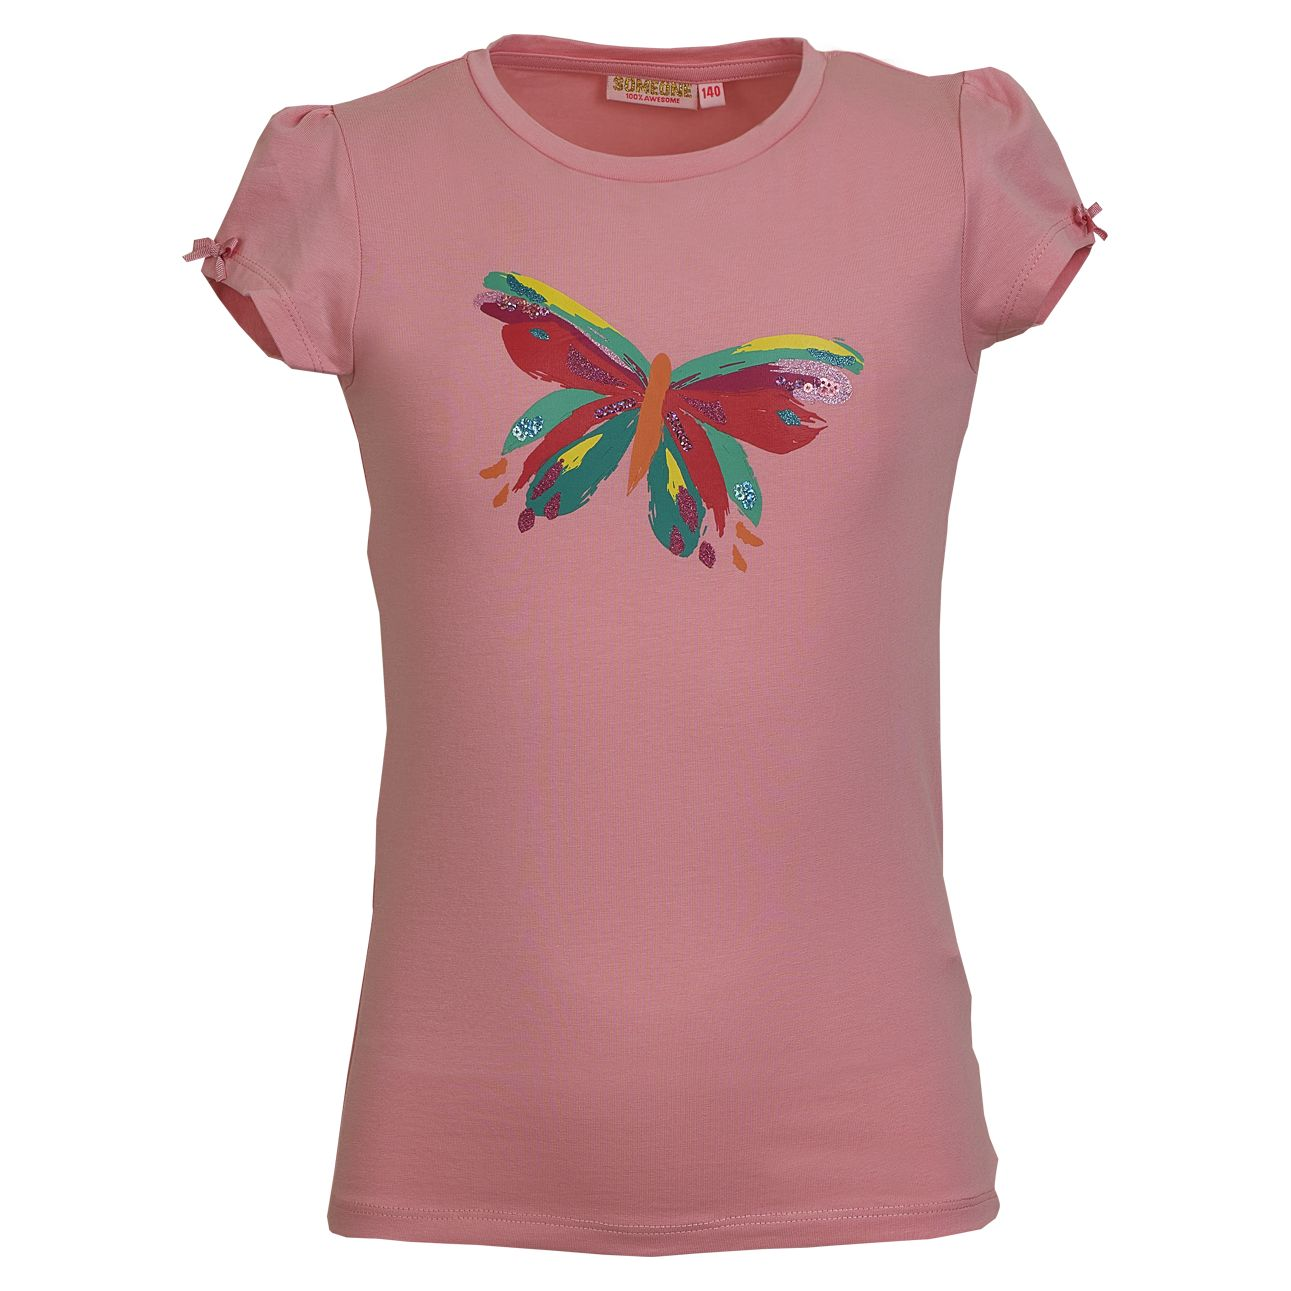 T-Shirt Butterfly 140 Pink SOMEONE 100% Awesome